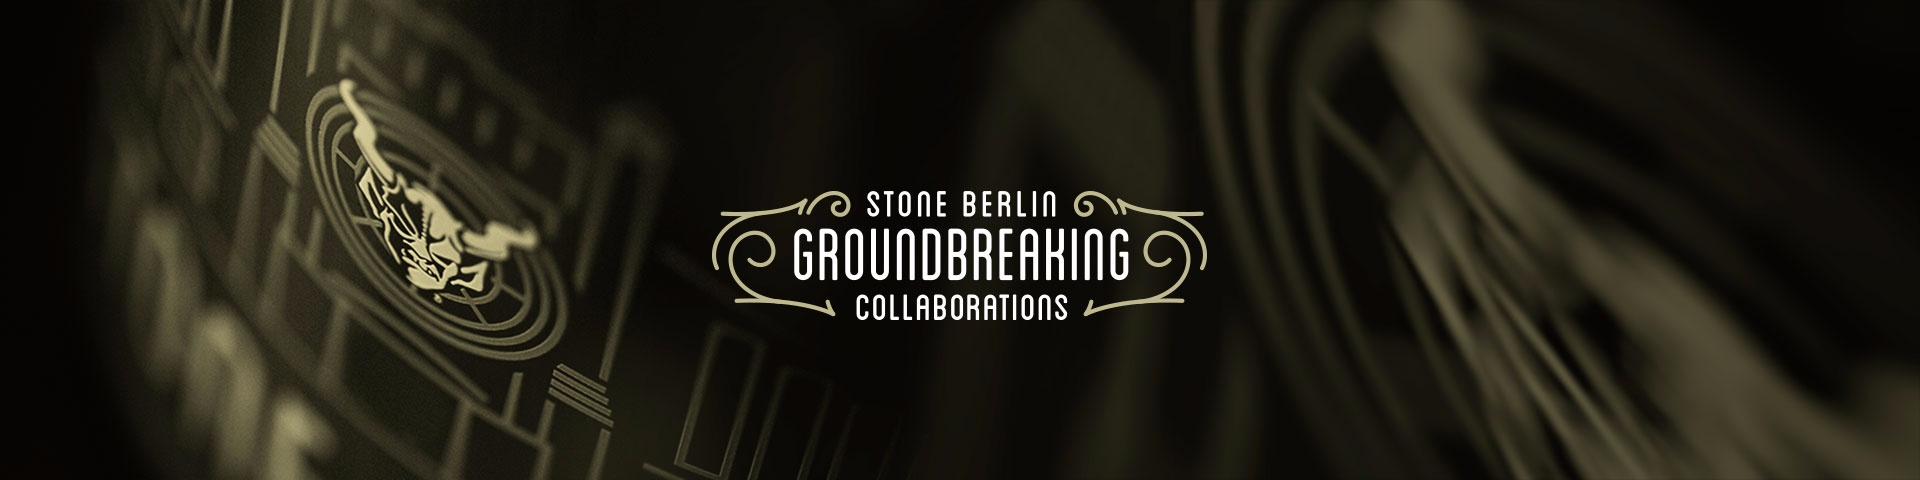 Berlin Groundbreaking Collaborations